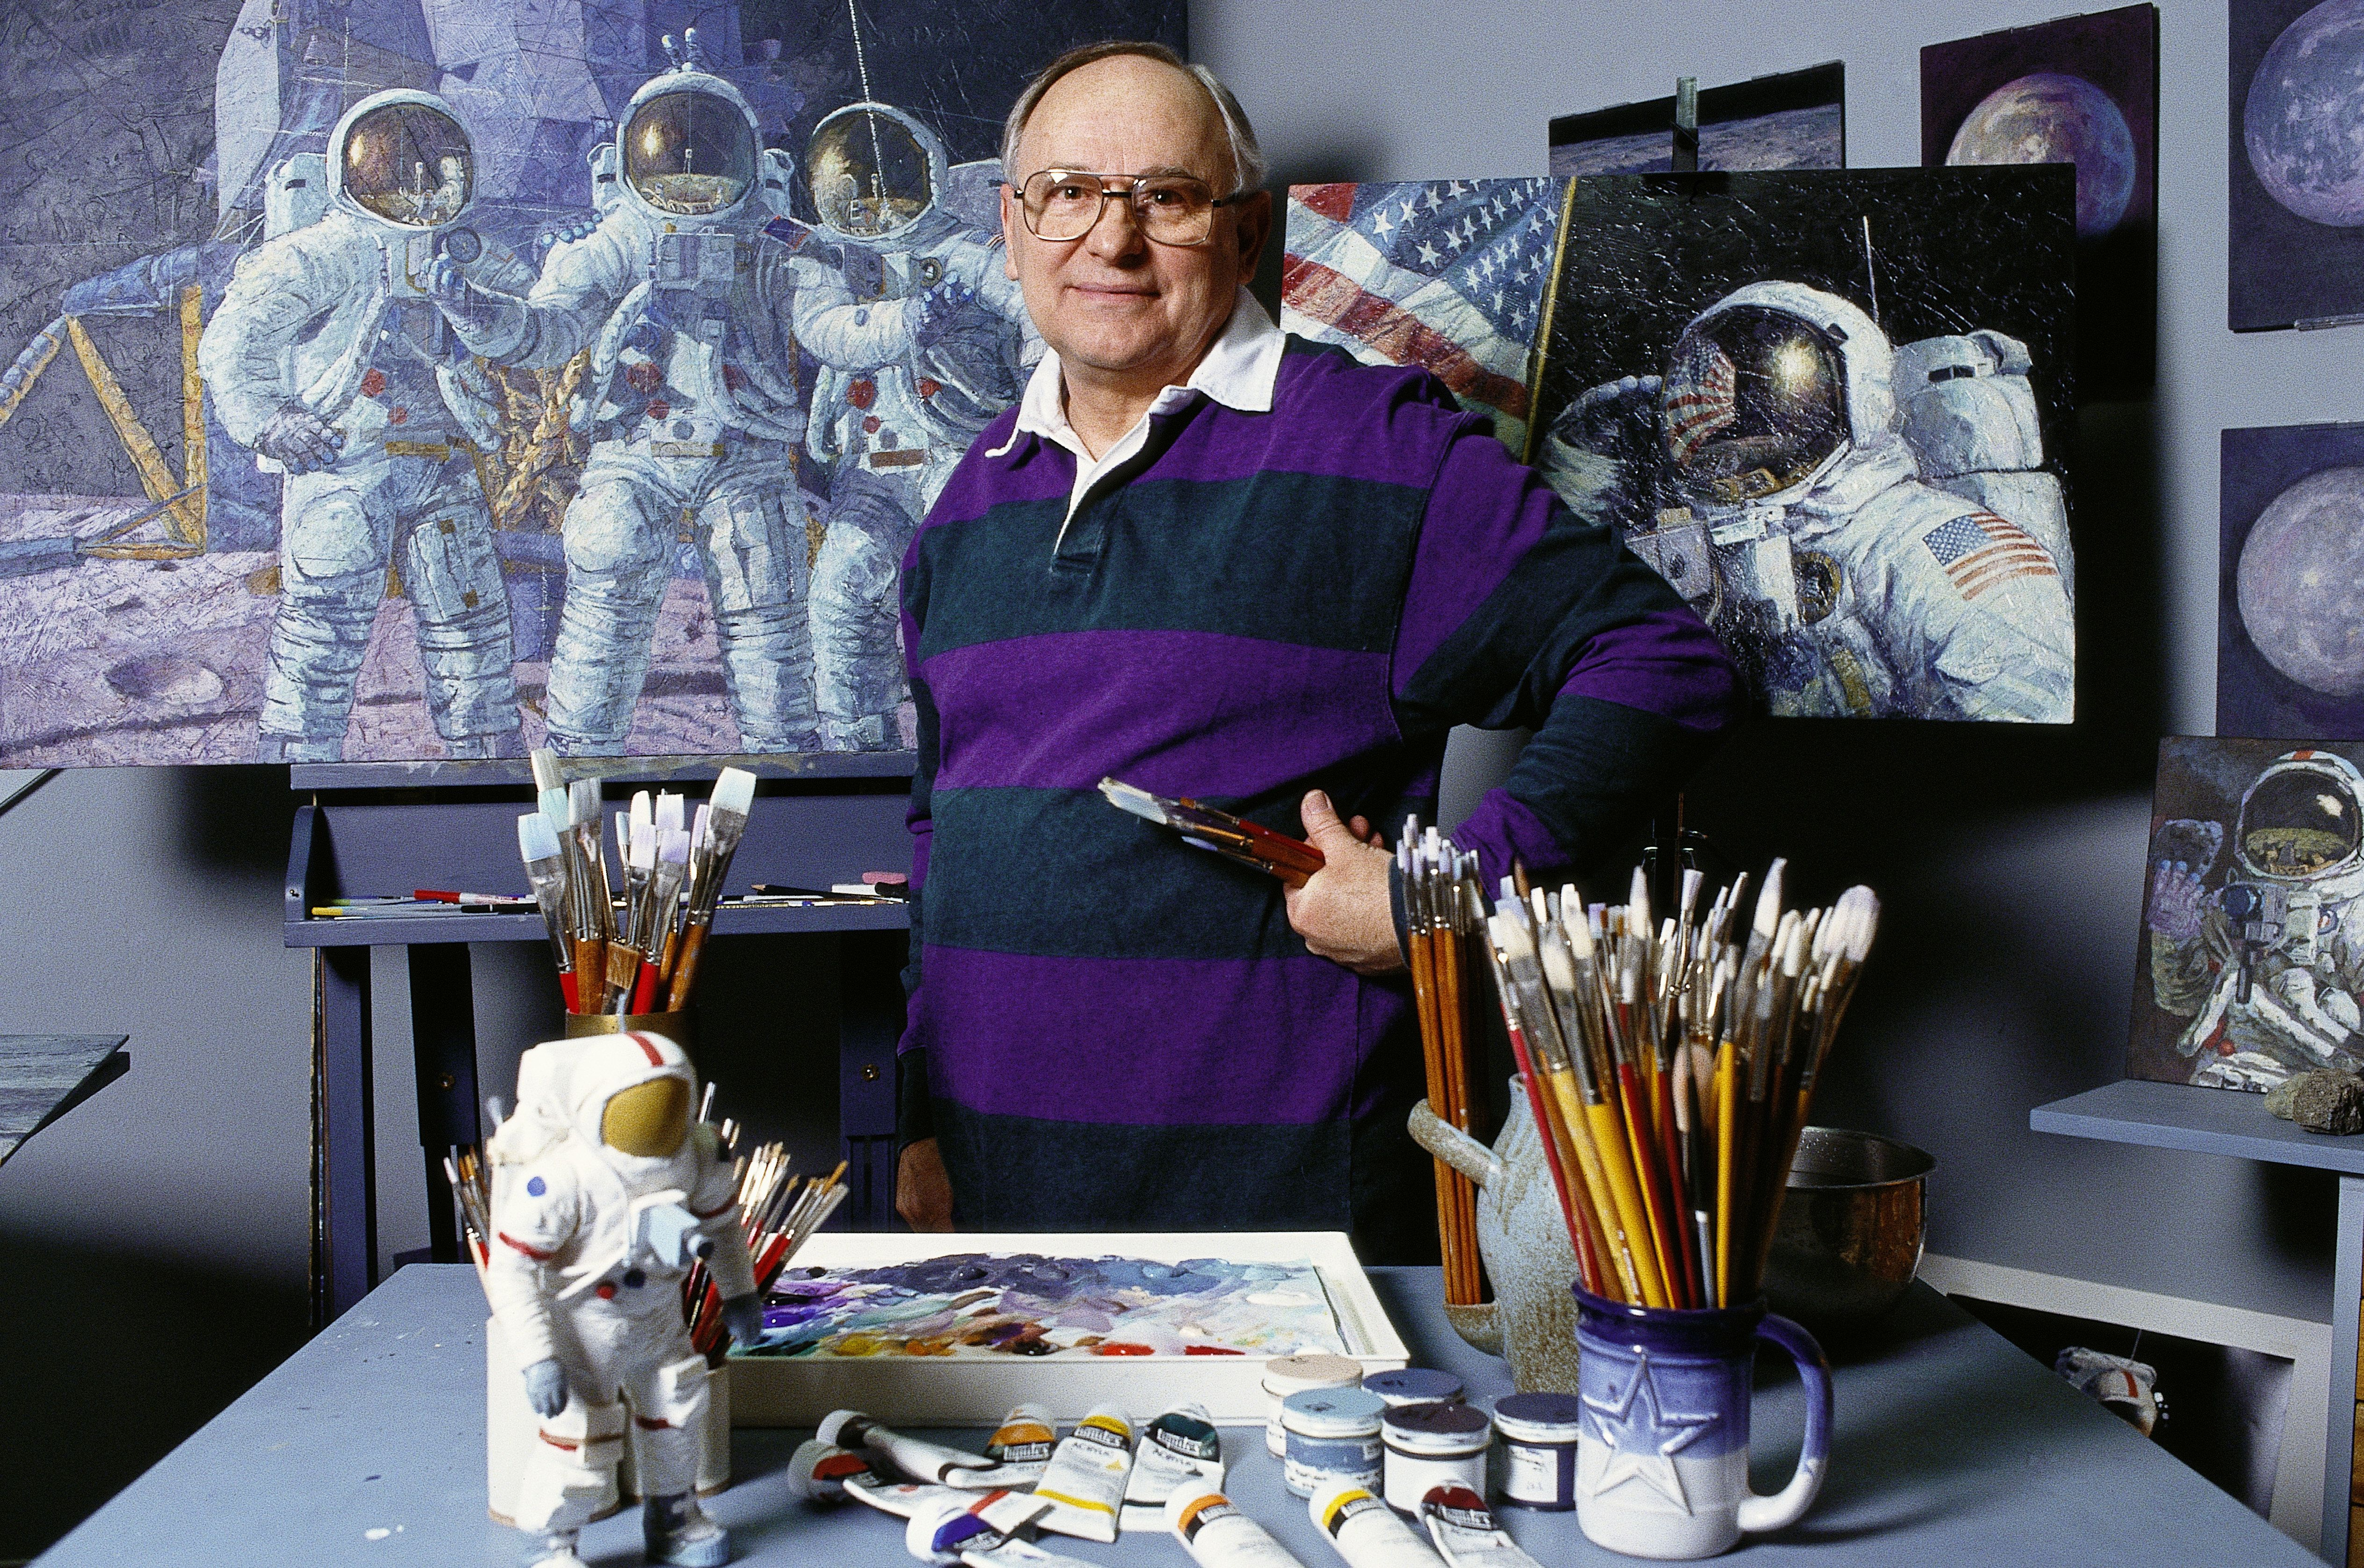 Alan Bean, moon-walking U.S. astronaut turned painter, dies in Houston